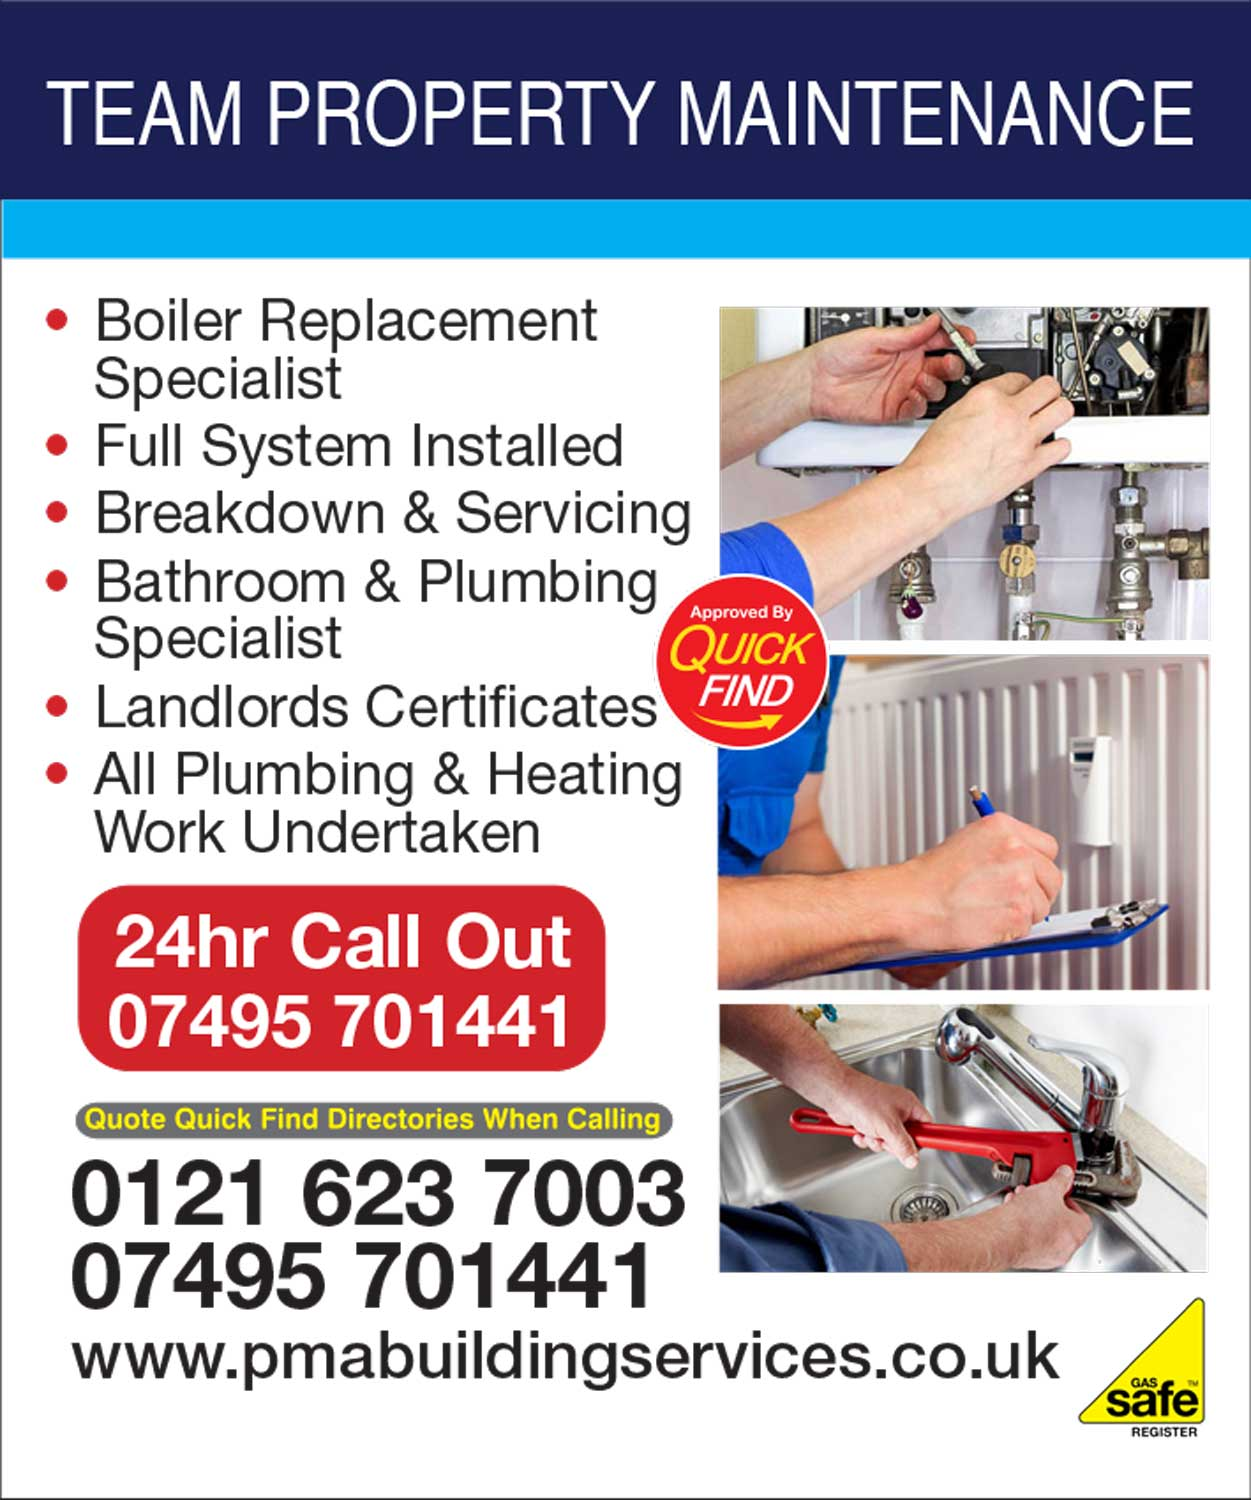 Team Property Maintenance